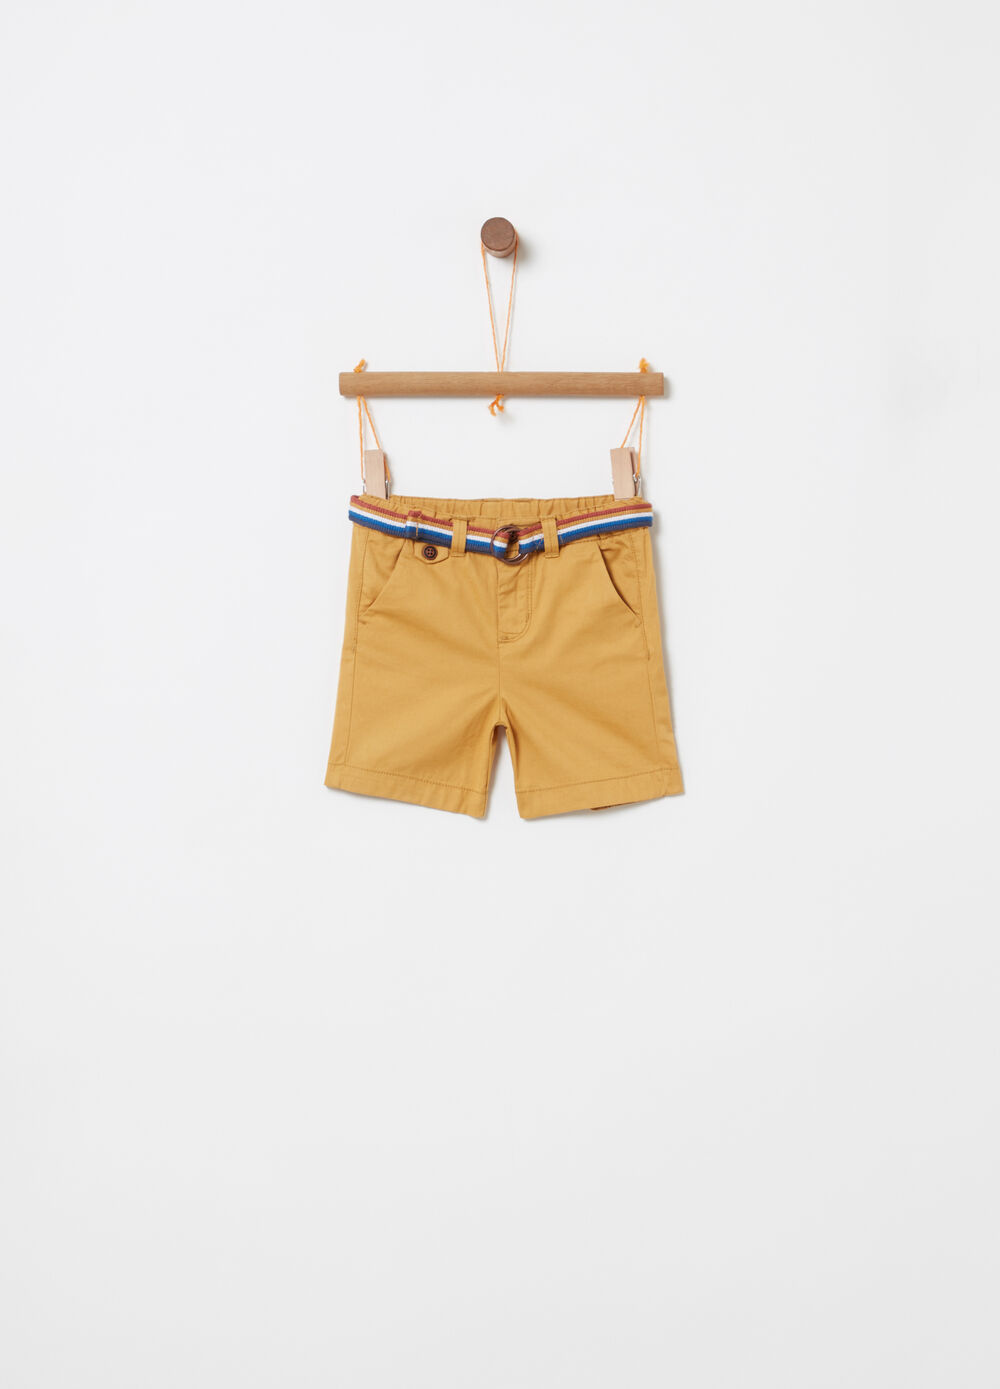 Bermuda shorts with pockets and multicoloured belt